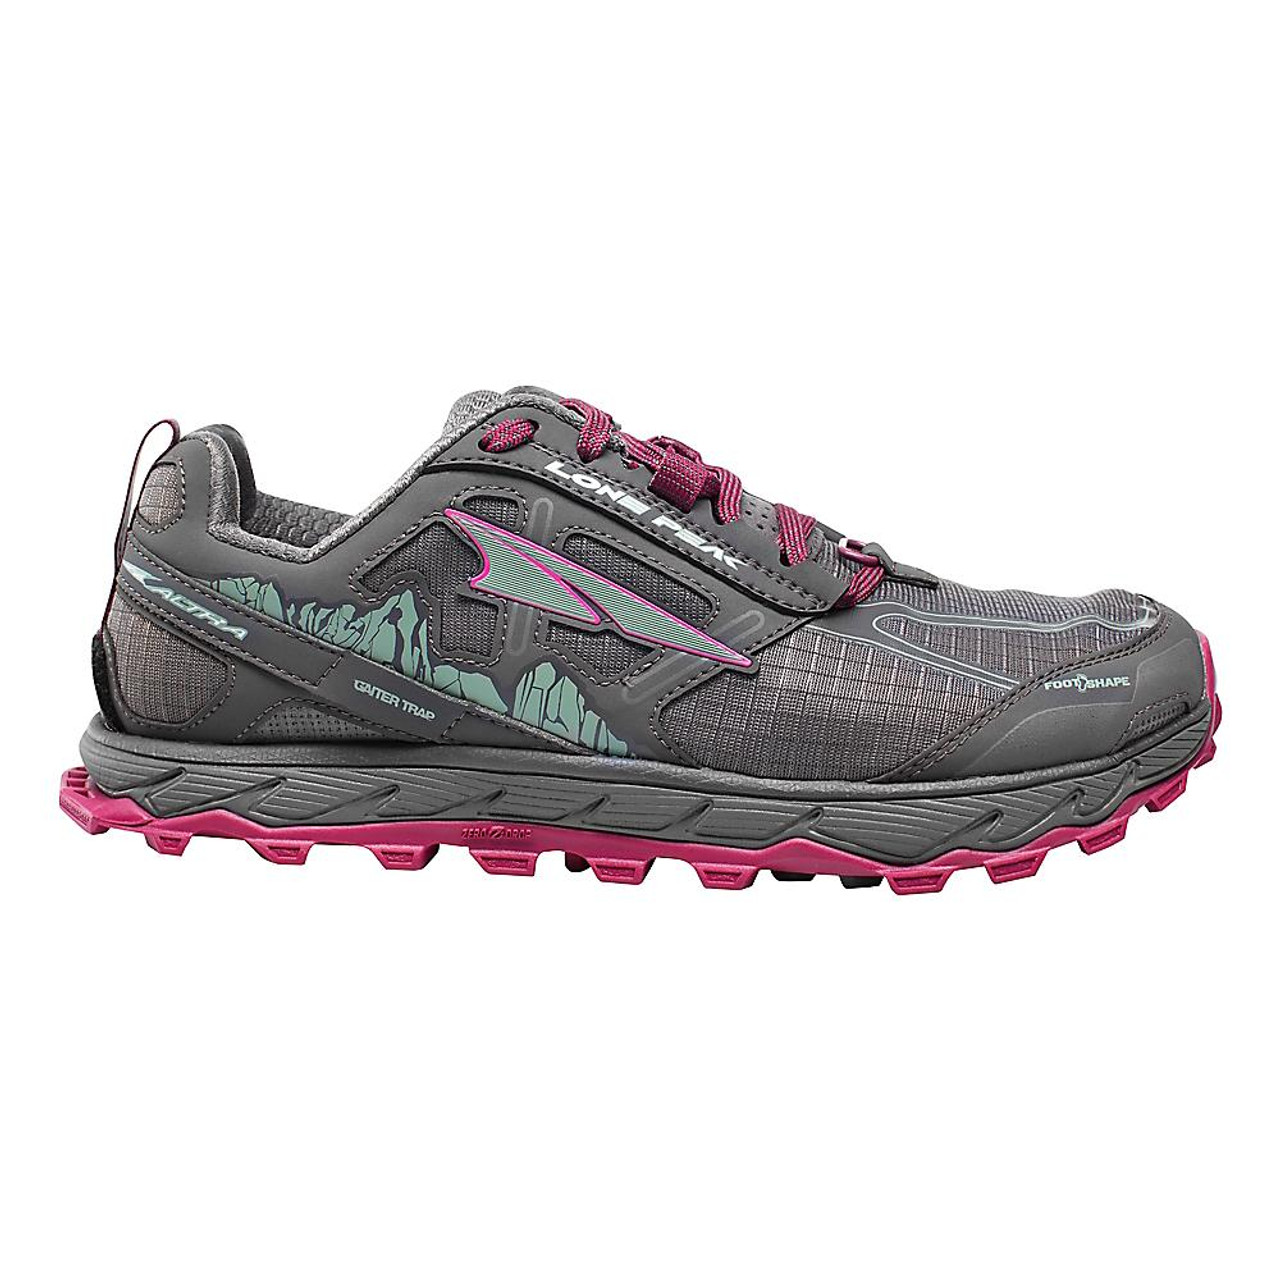 08cf0432488a1 Women's Altra Lone Peak 4.0 Trail Running Shoes | Free 3-Day Shipping